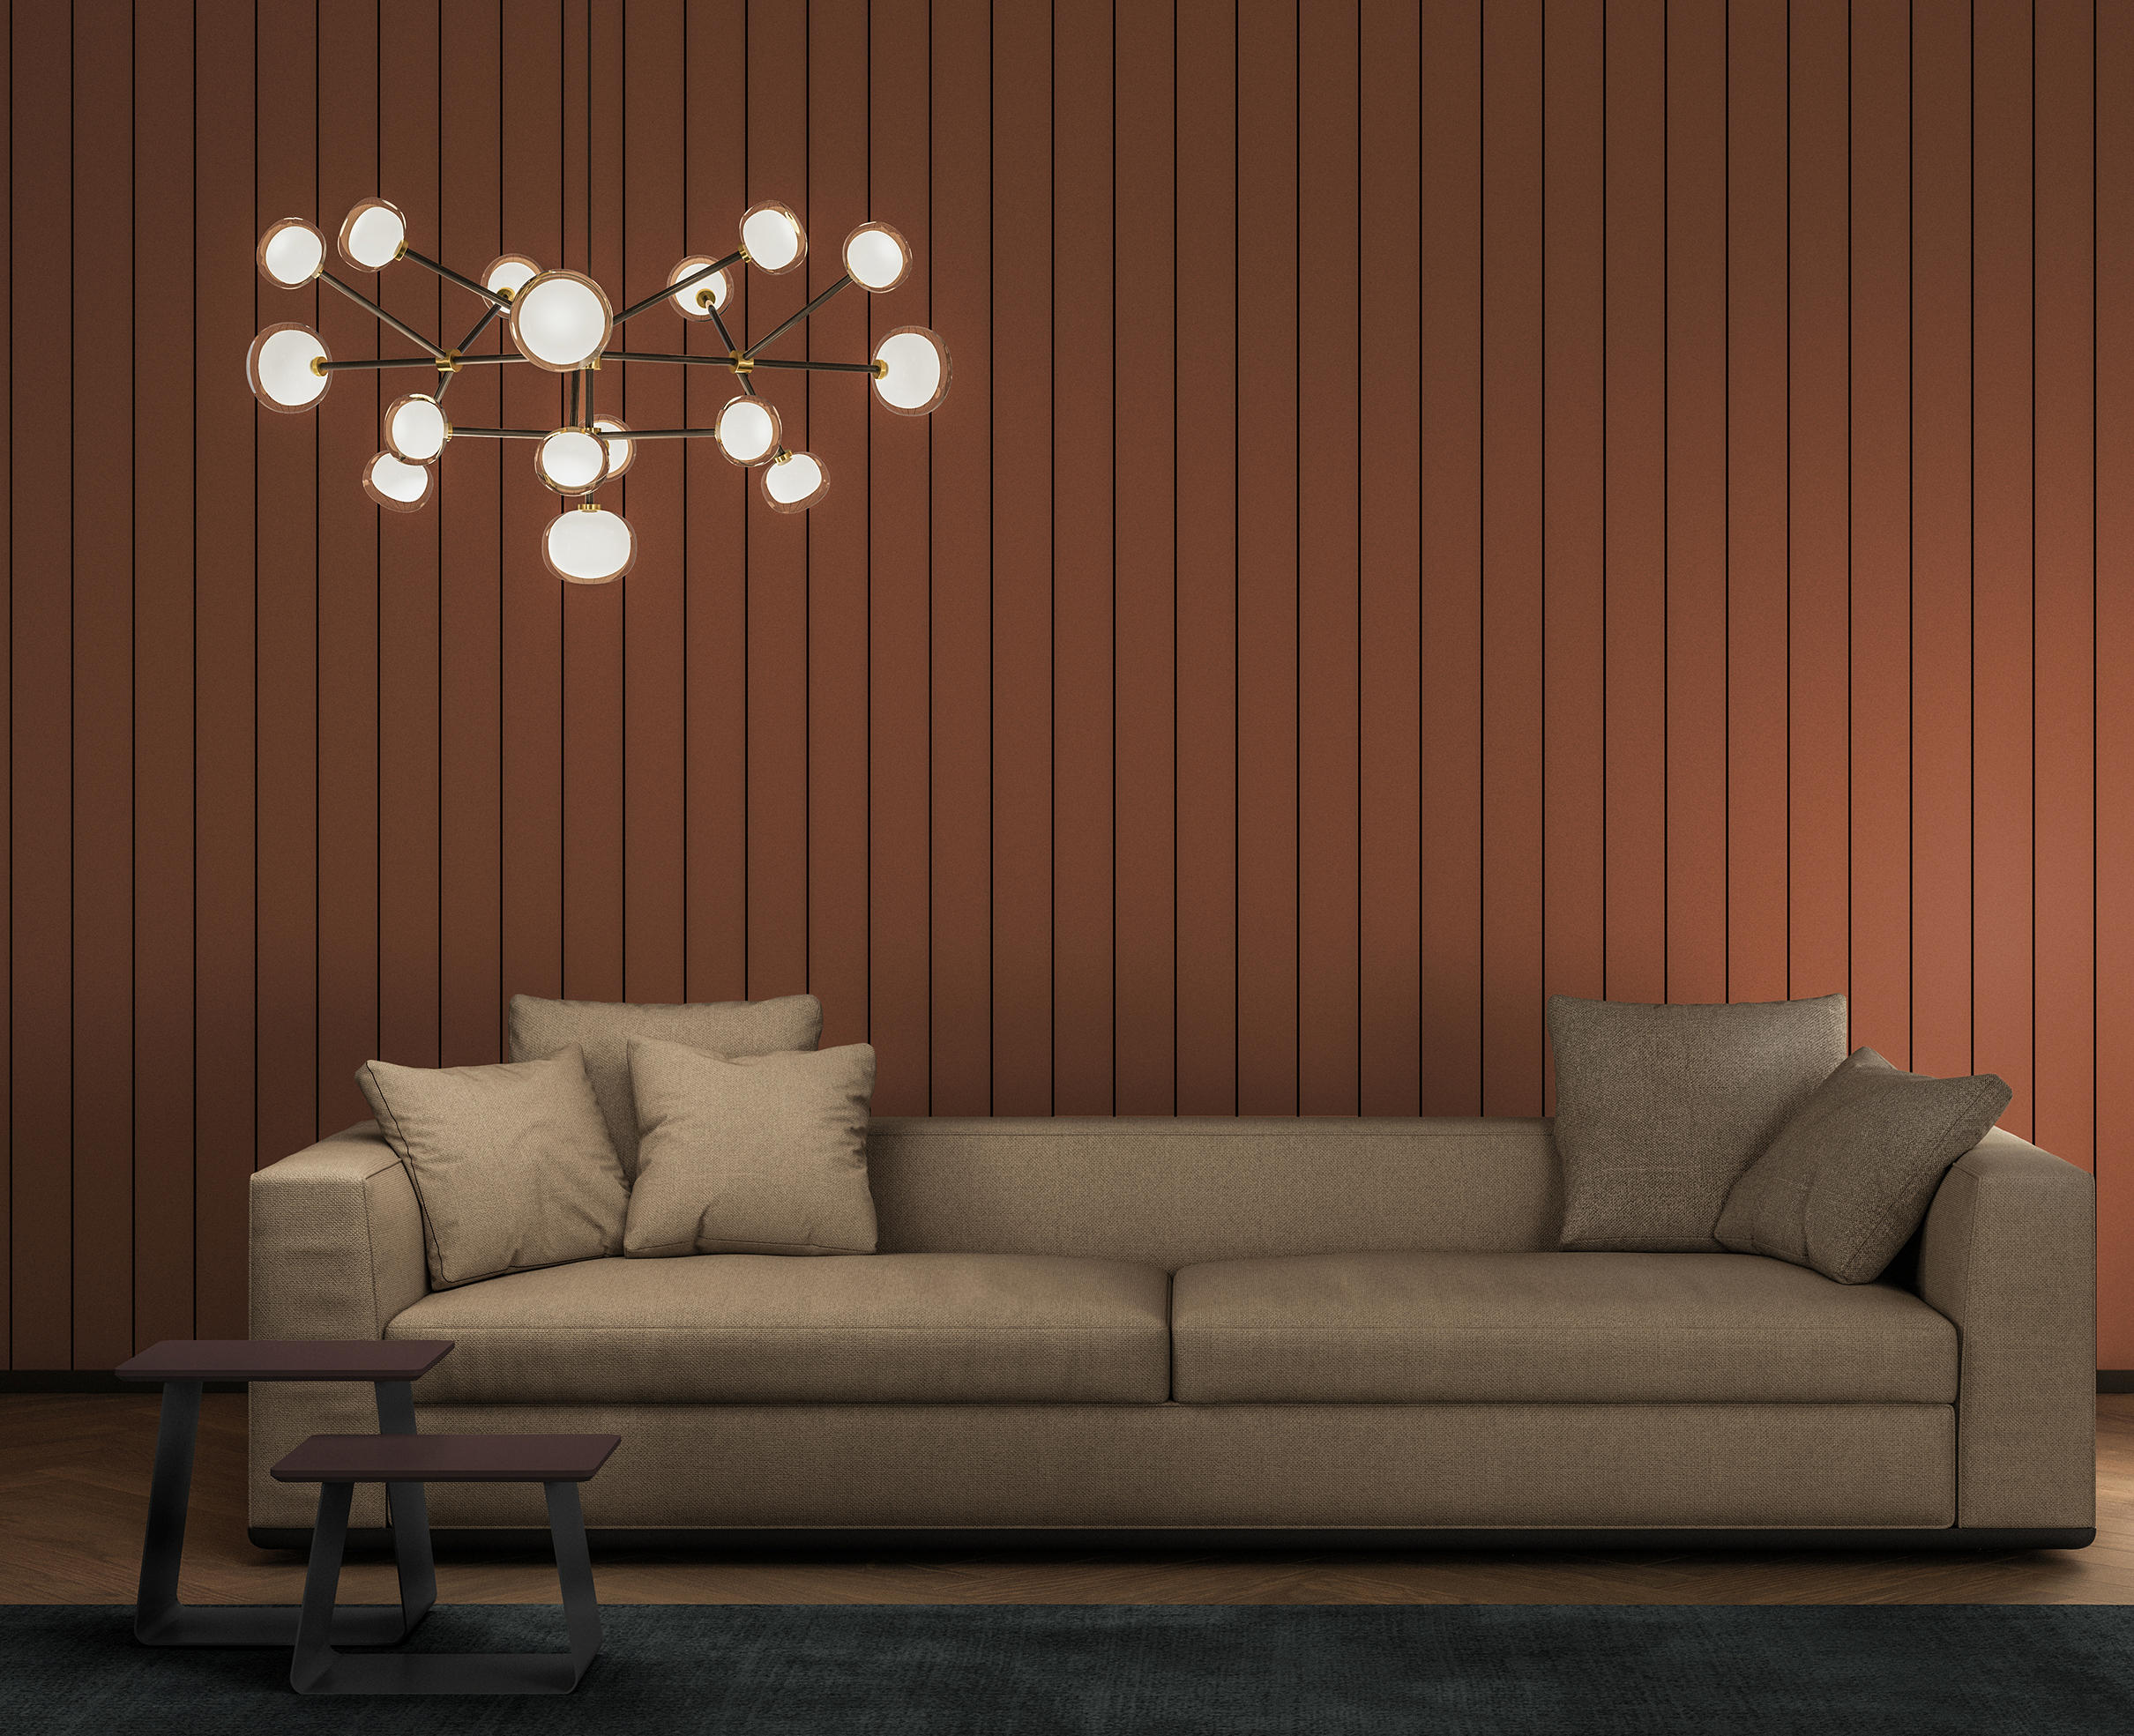 Nabila General Lighting From Tooy Architonic